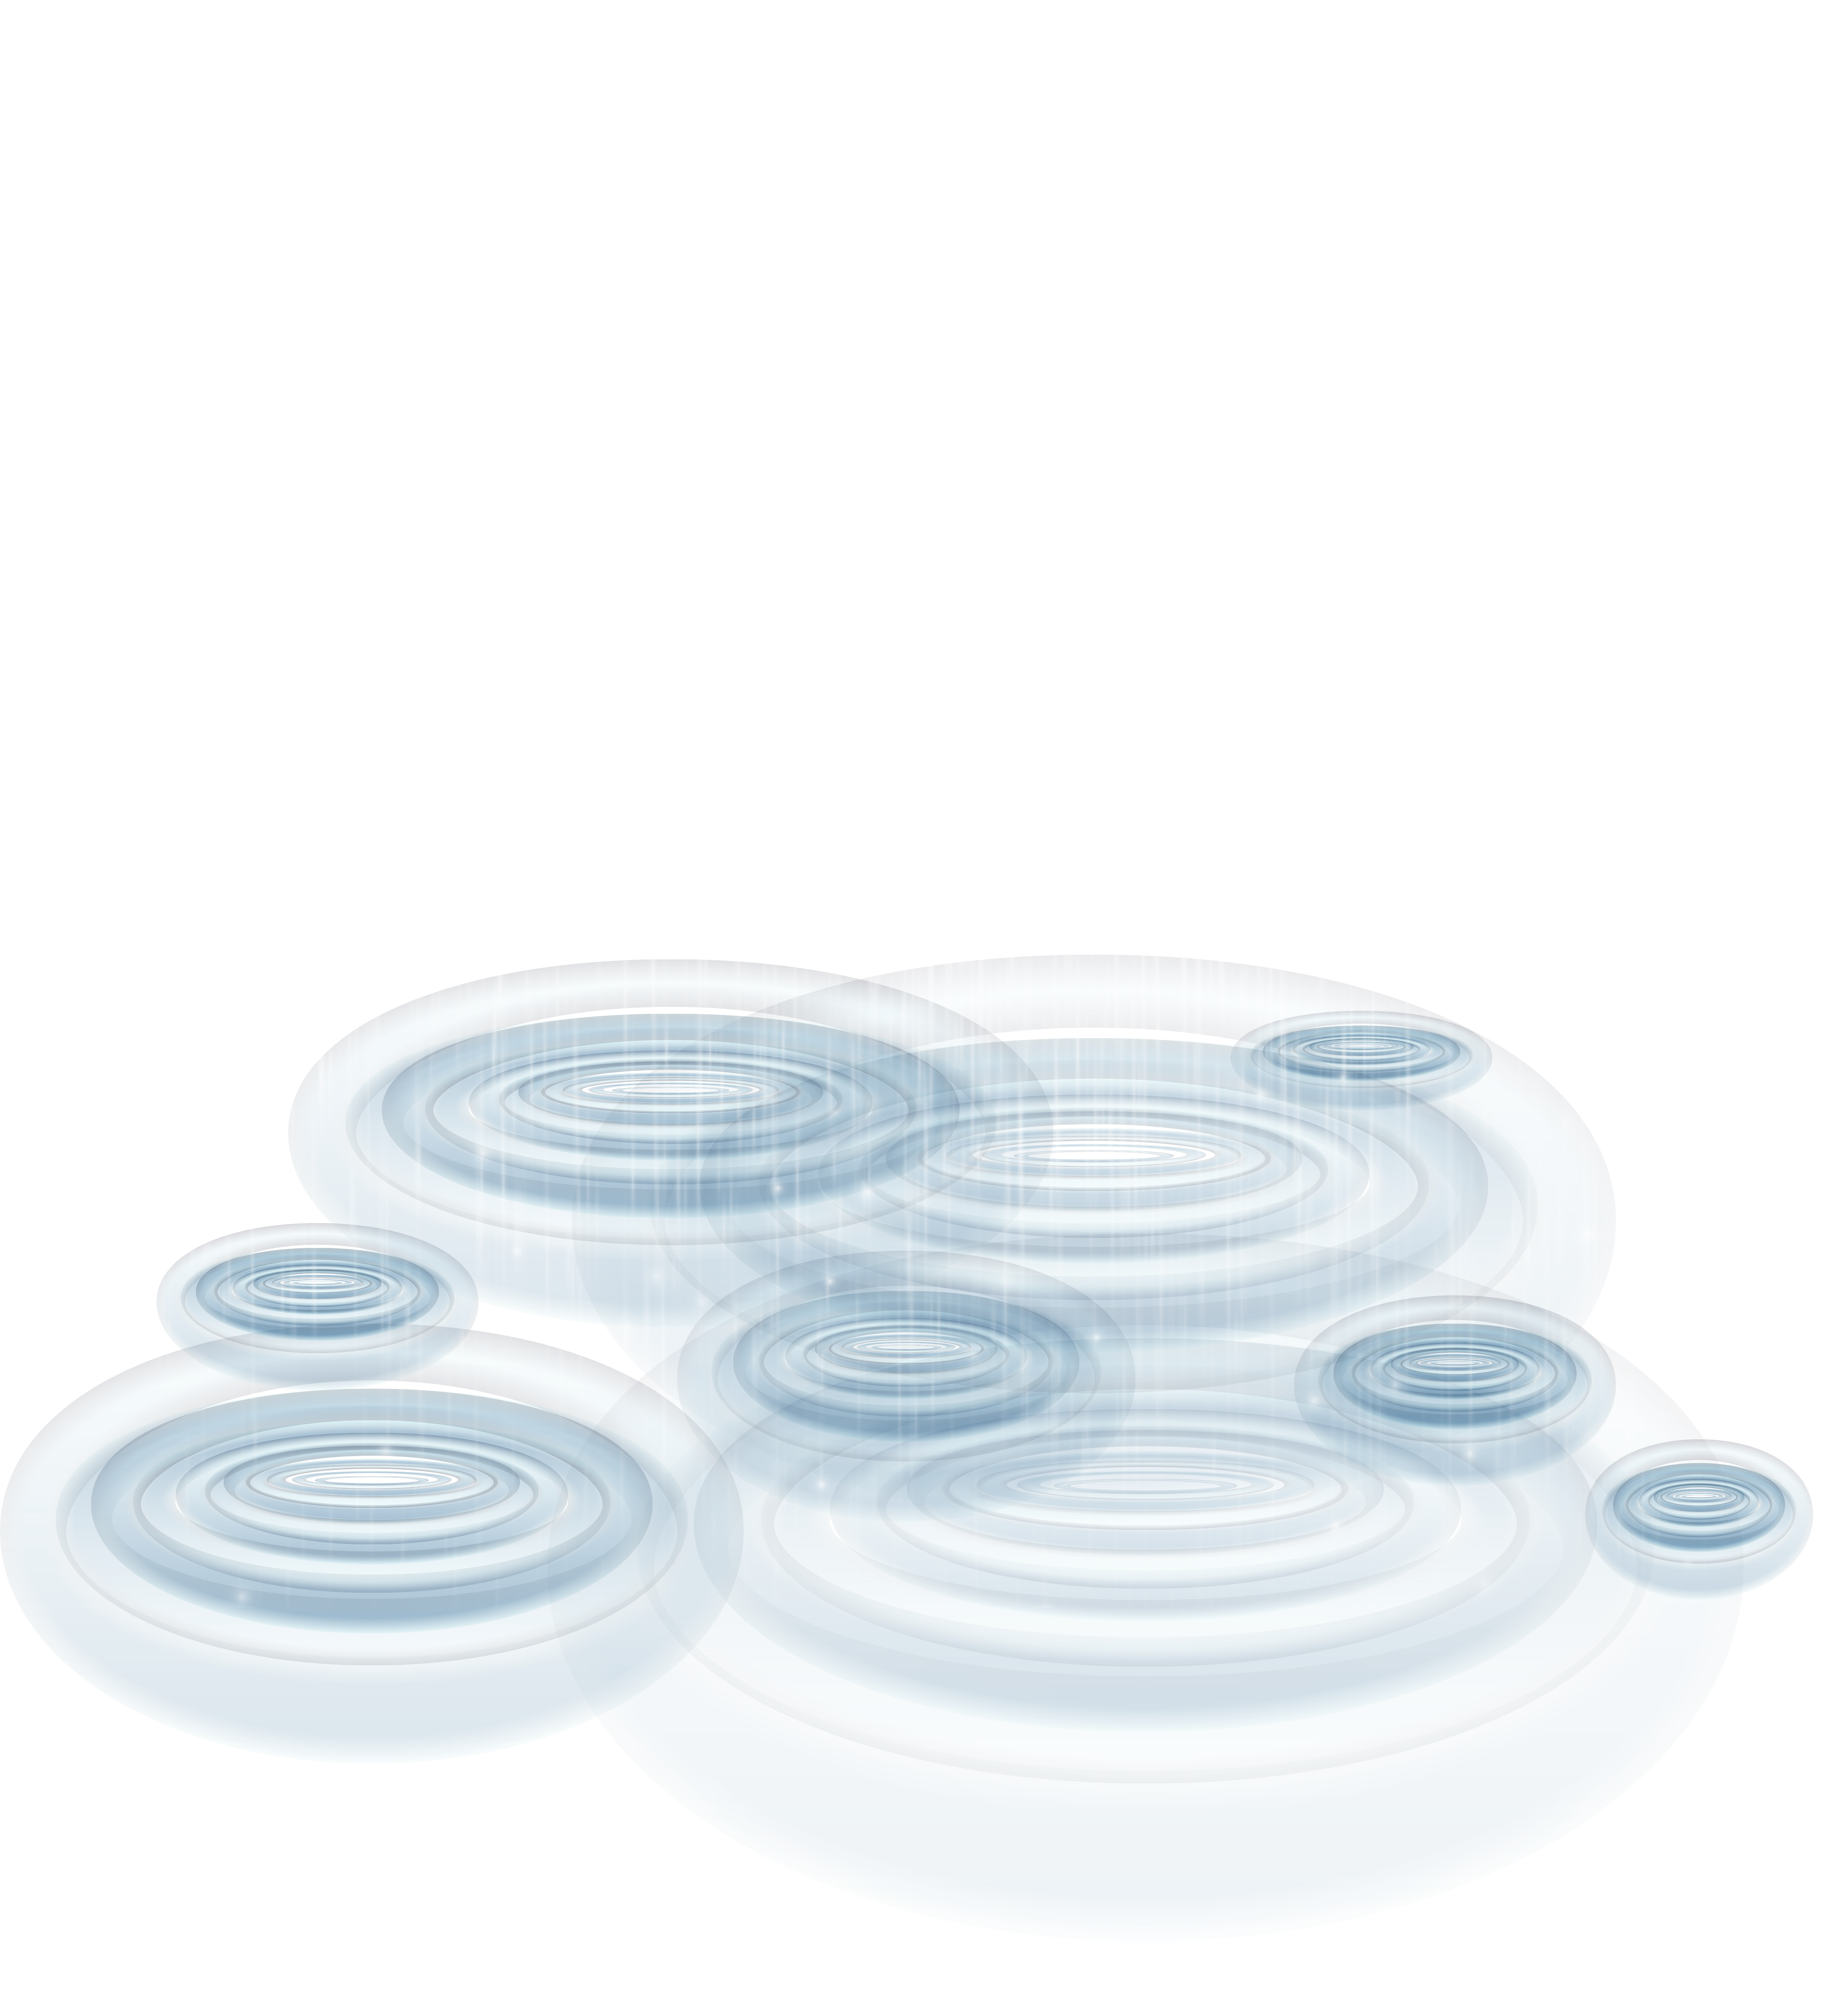 Rain with puddles transparent. Puddle clipart freeuse stock